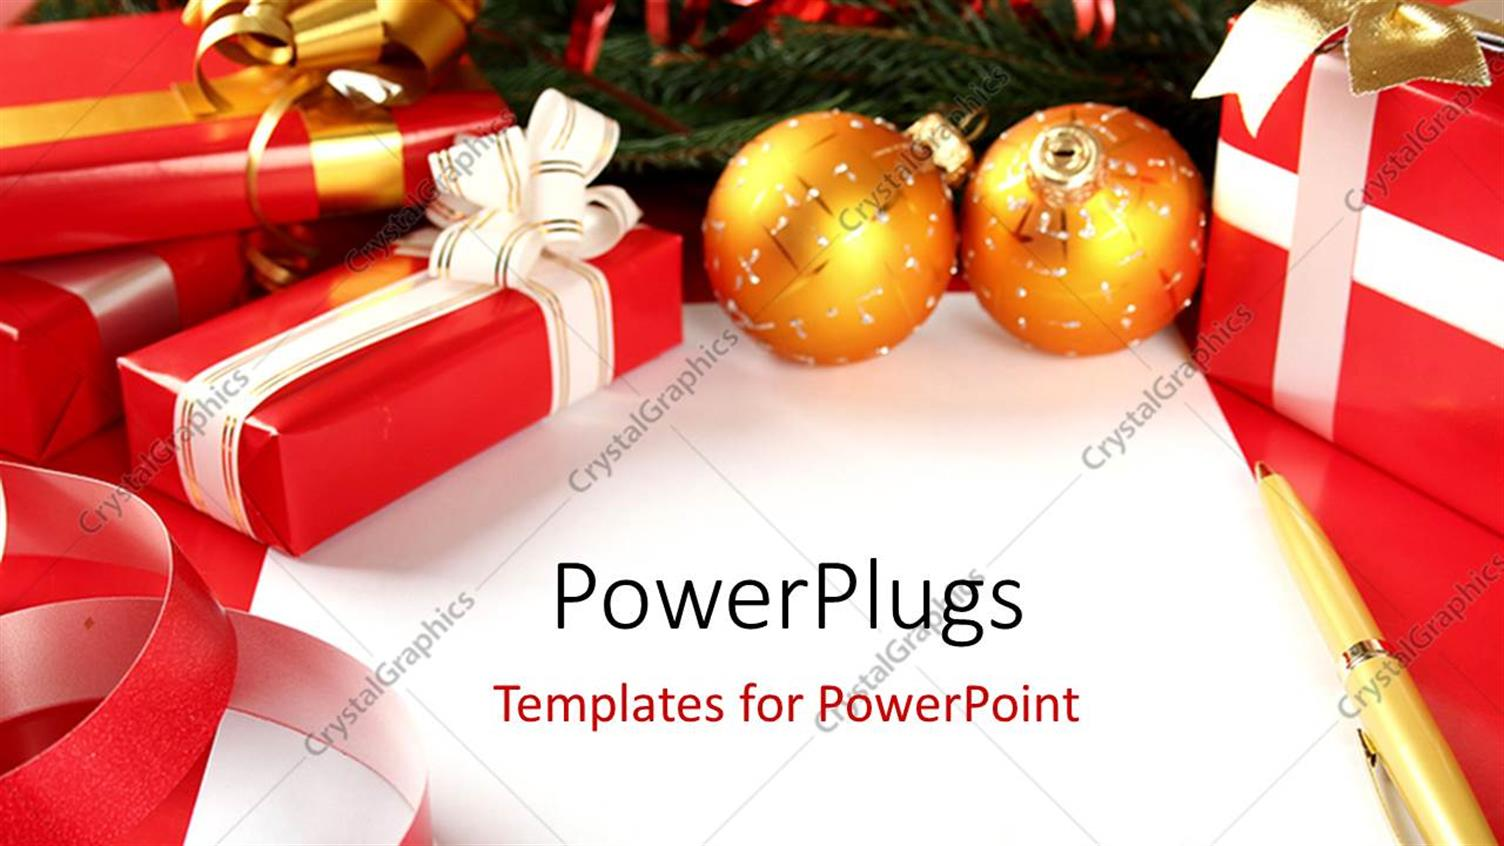 PowerPoint Template Displaying Gift Boxes and Gold Christmas Ornaments with Pen on Blank Christmas Card